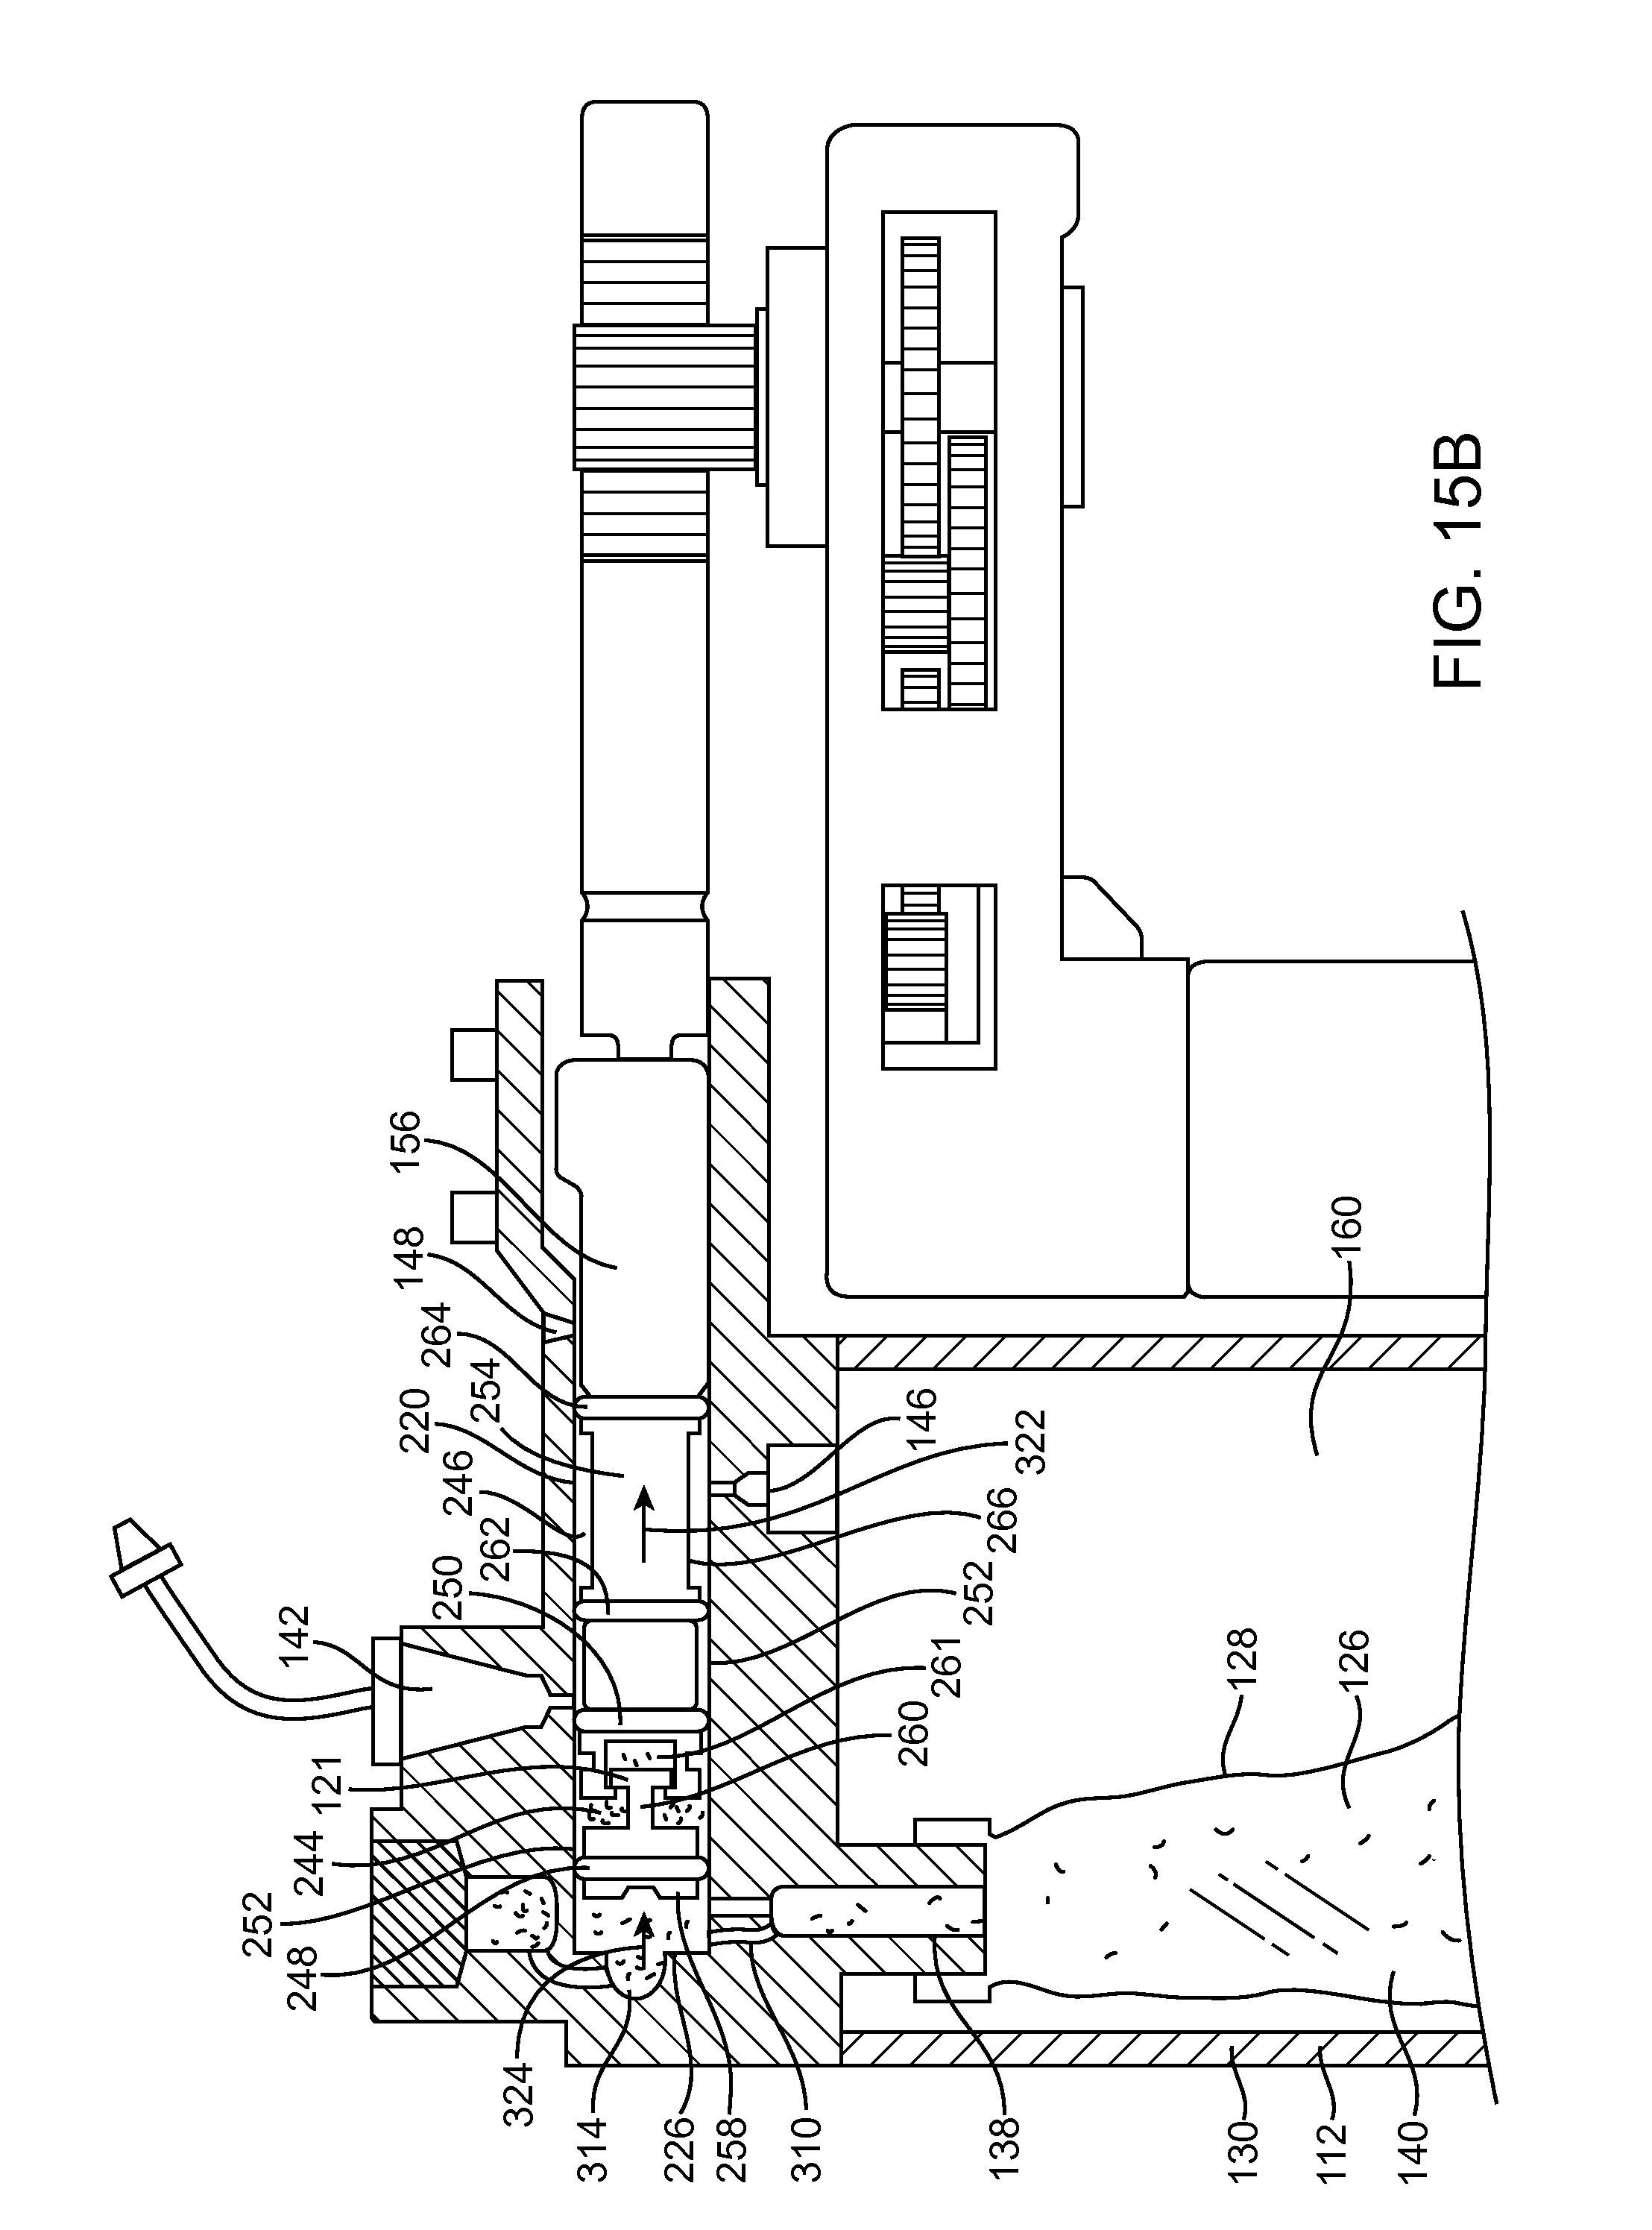 Us8926561b2 Infusion Pump System With Disposable Cartridge Having For Diagram Door Wiring Opener Pv 612 Pressure Venting And Feedback Google Patents